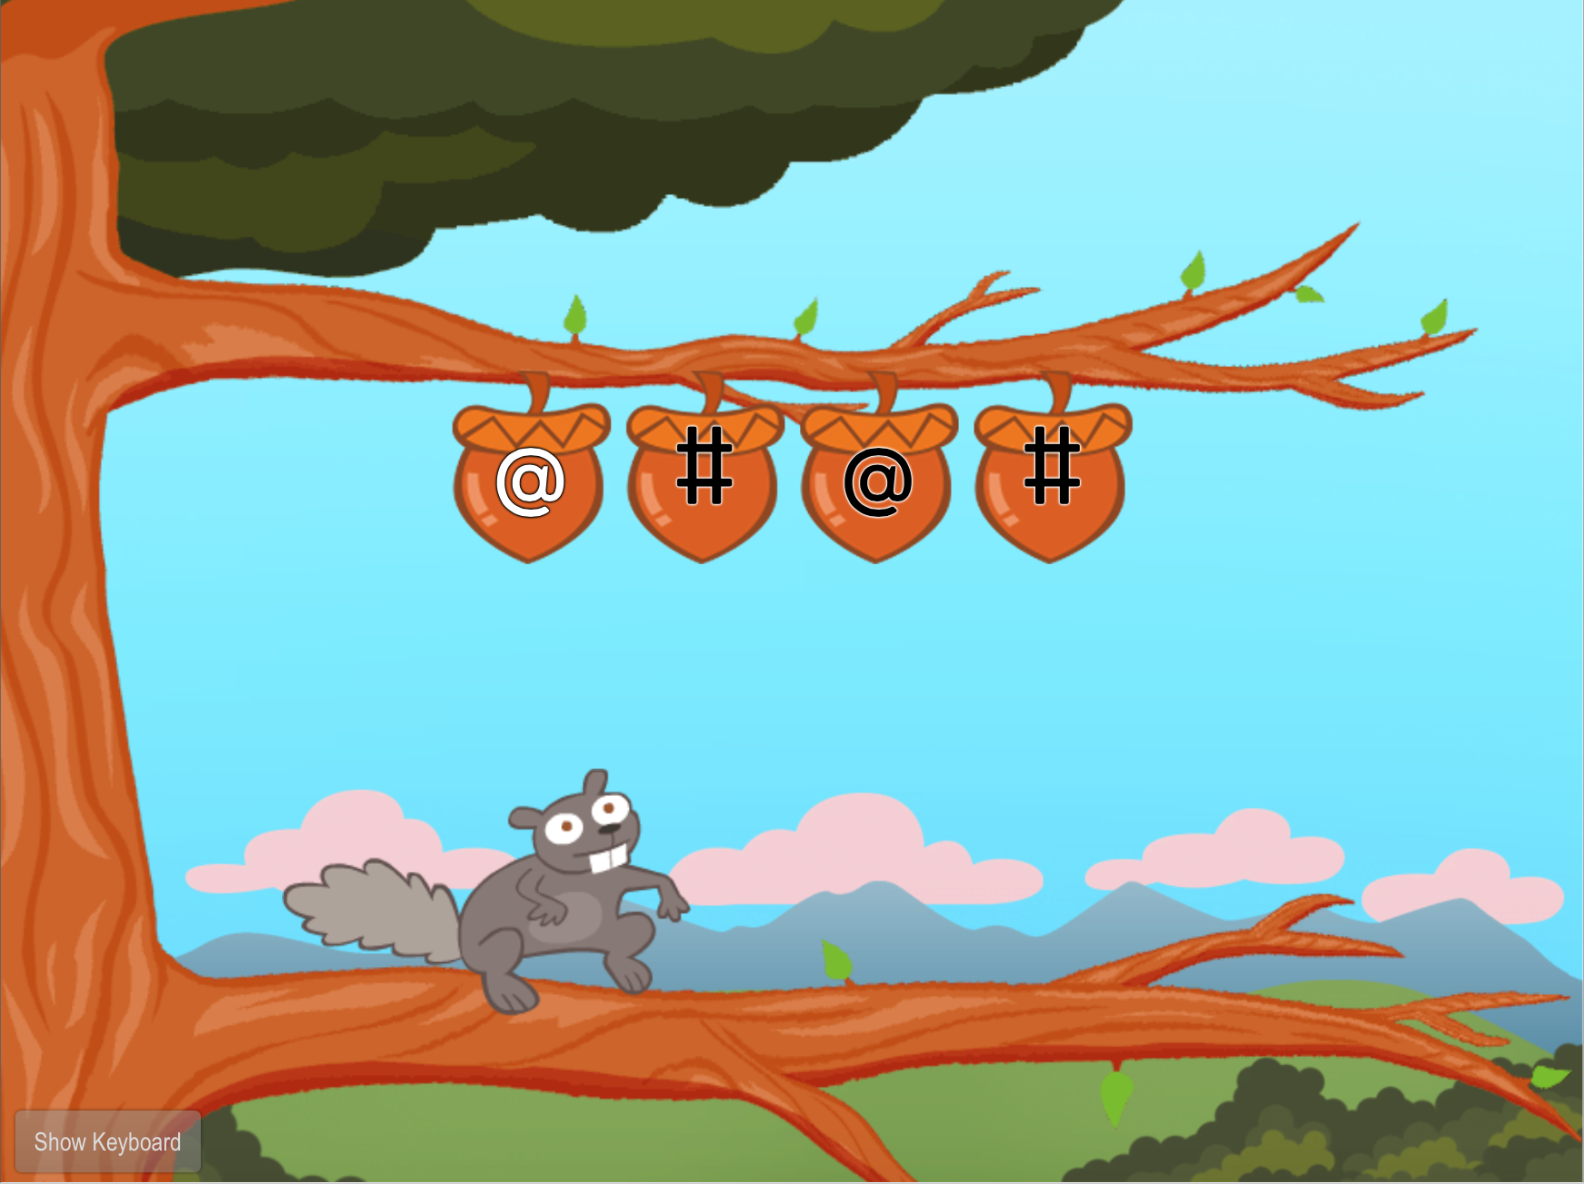 1st grade Typing Games: Typing Symbols with Squirrel